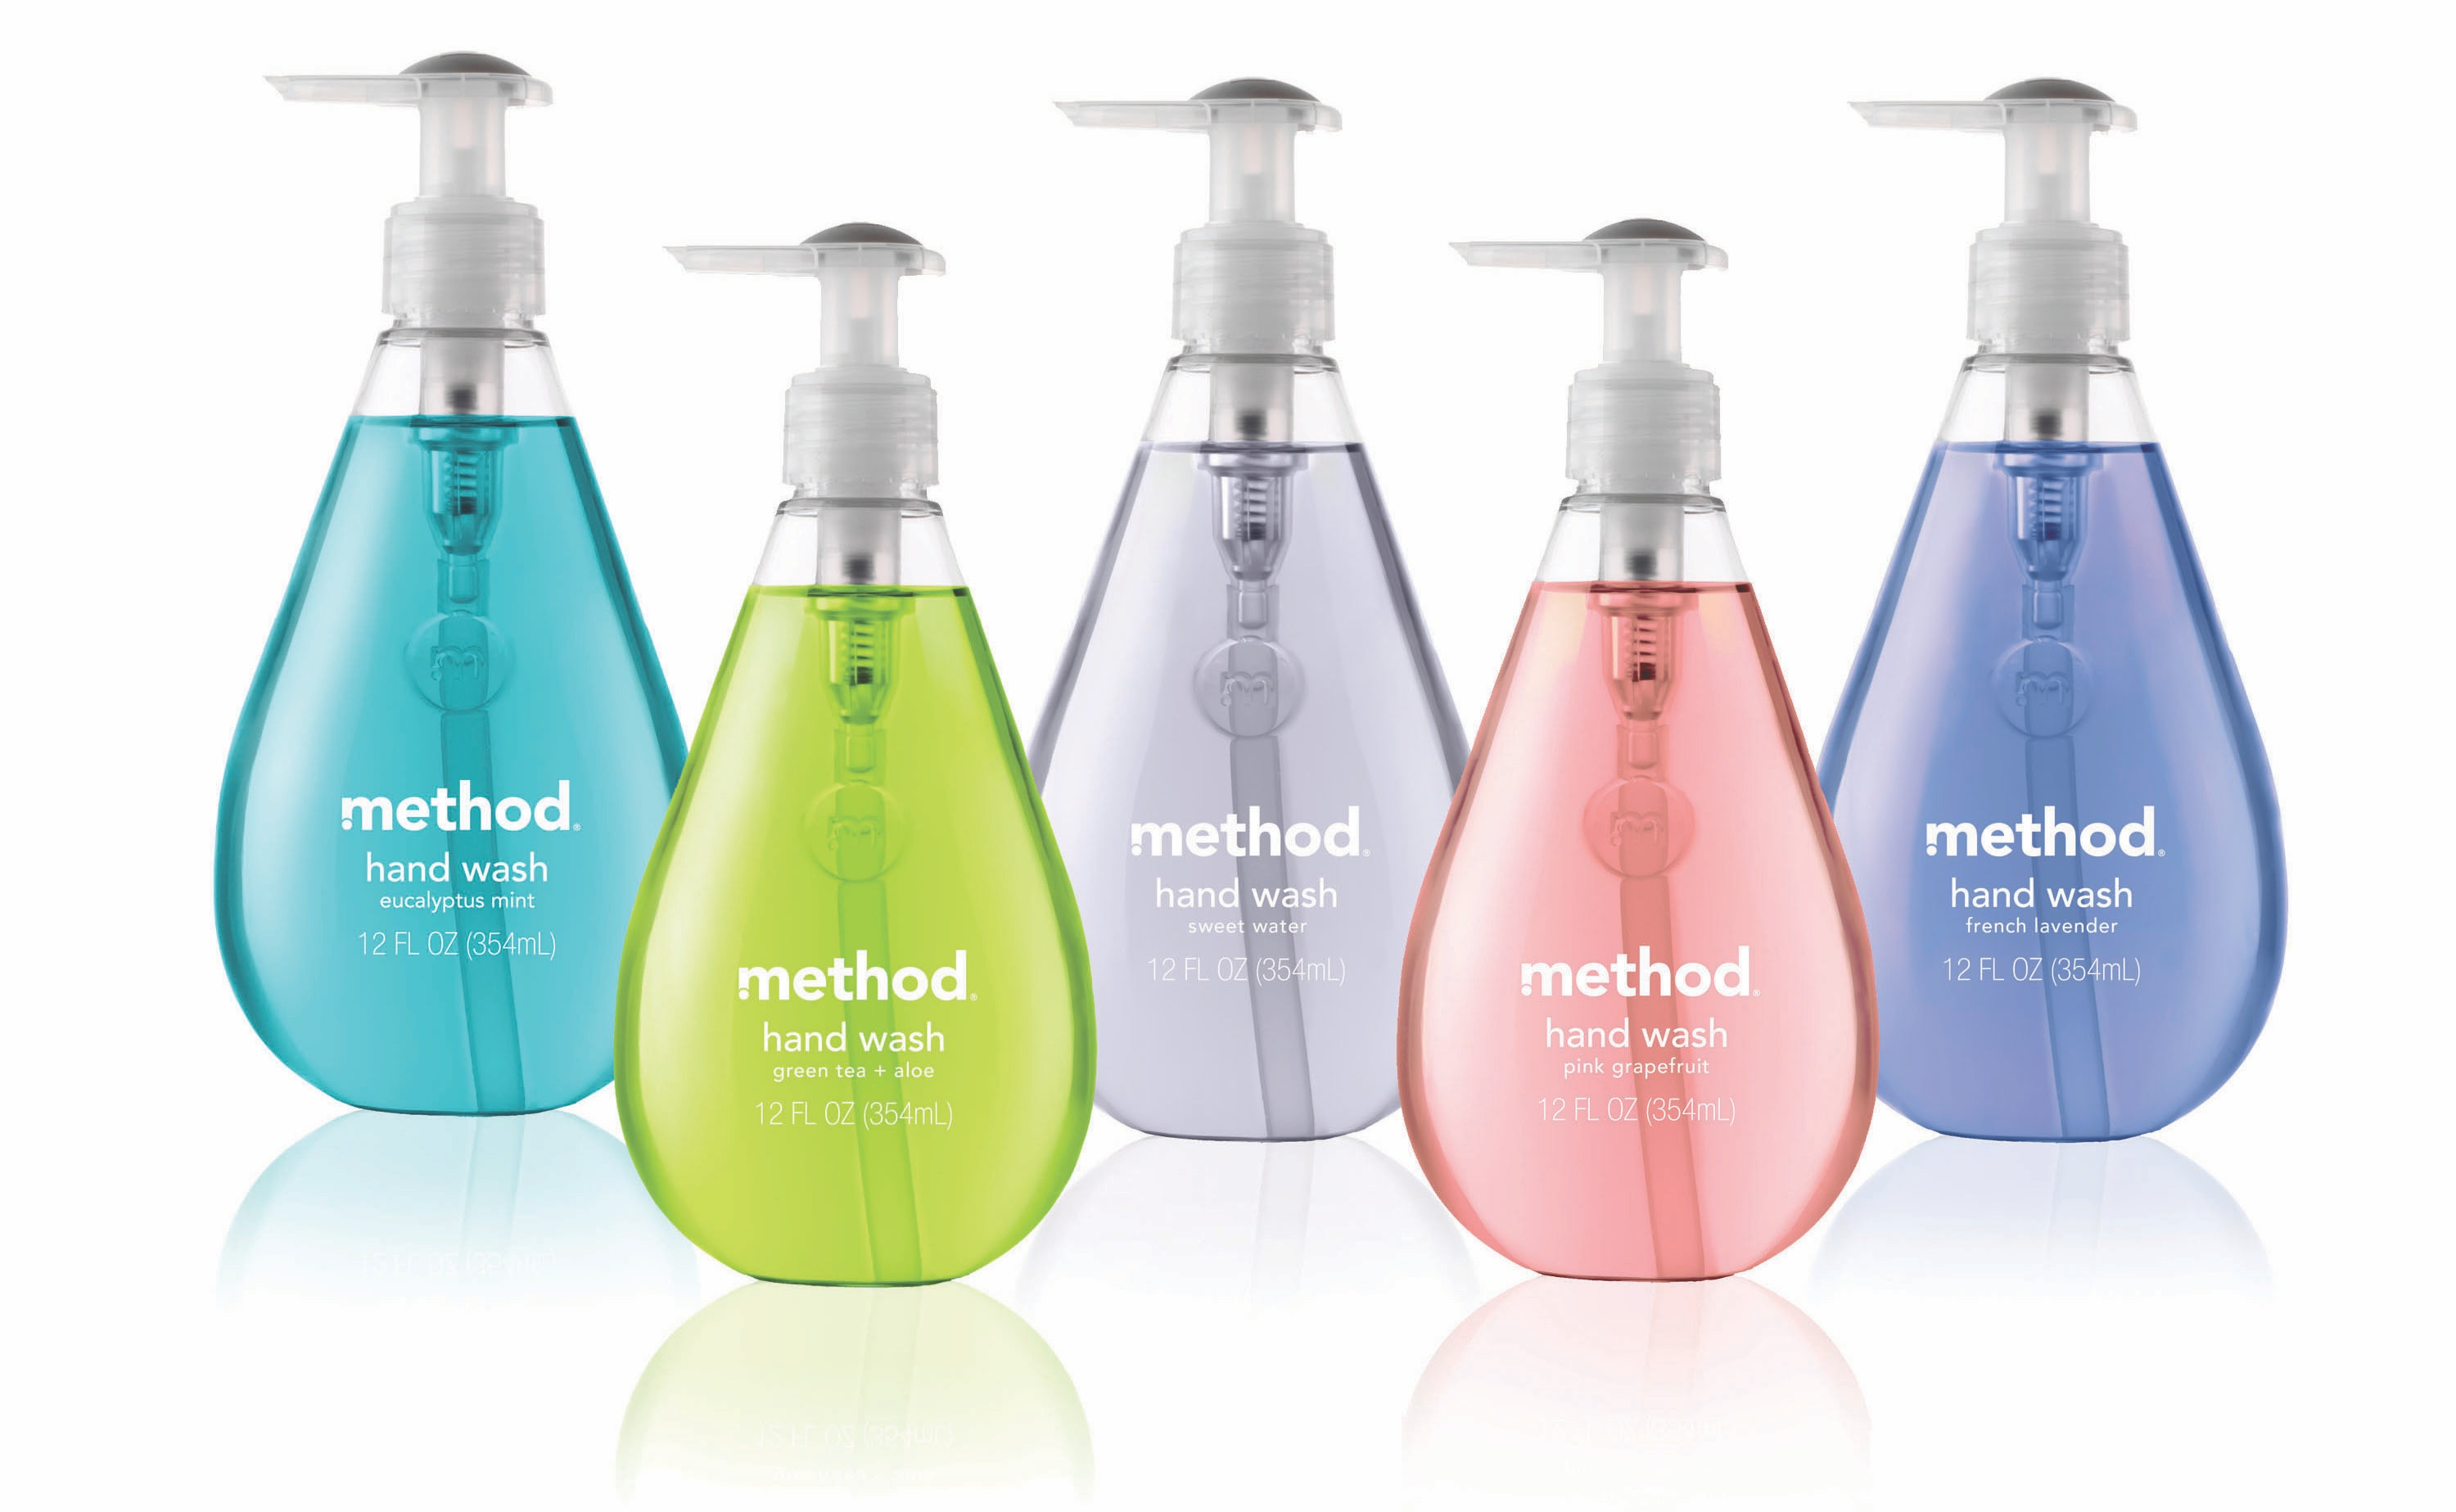 Method soap product packaging